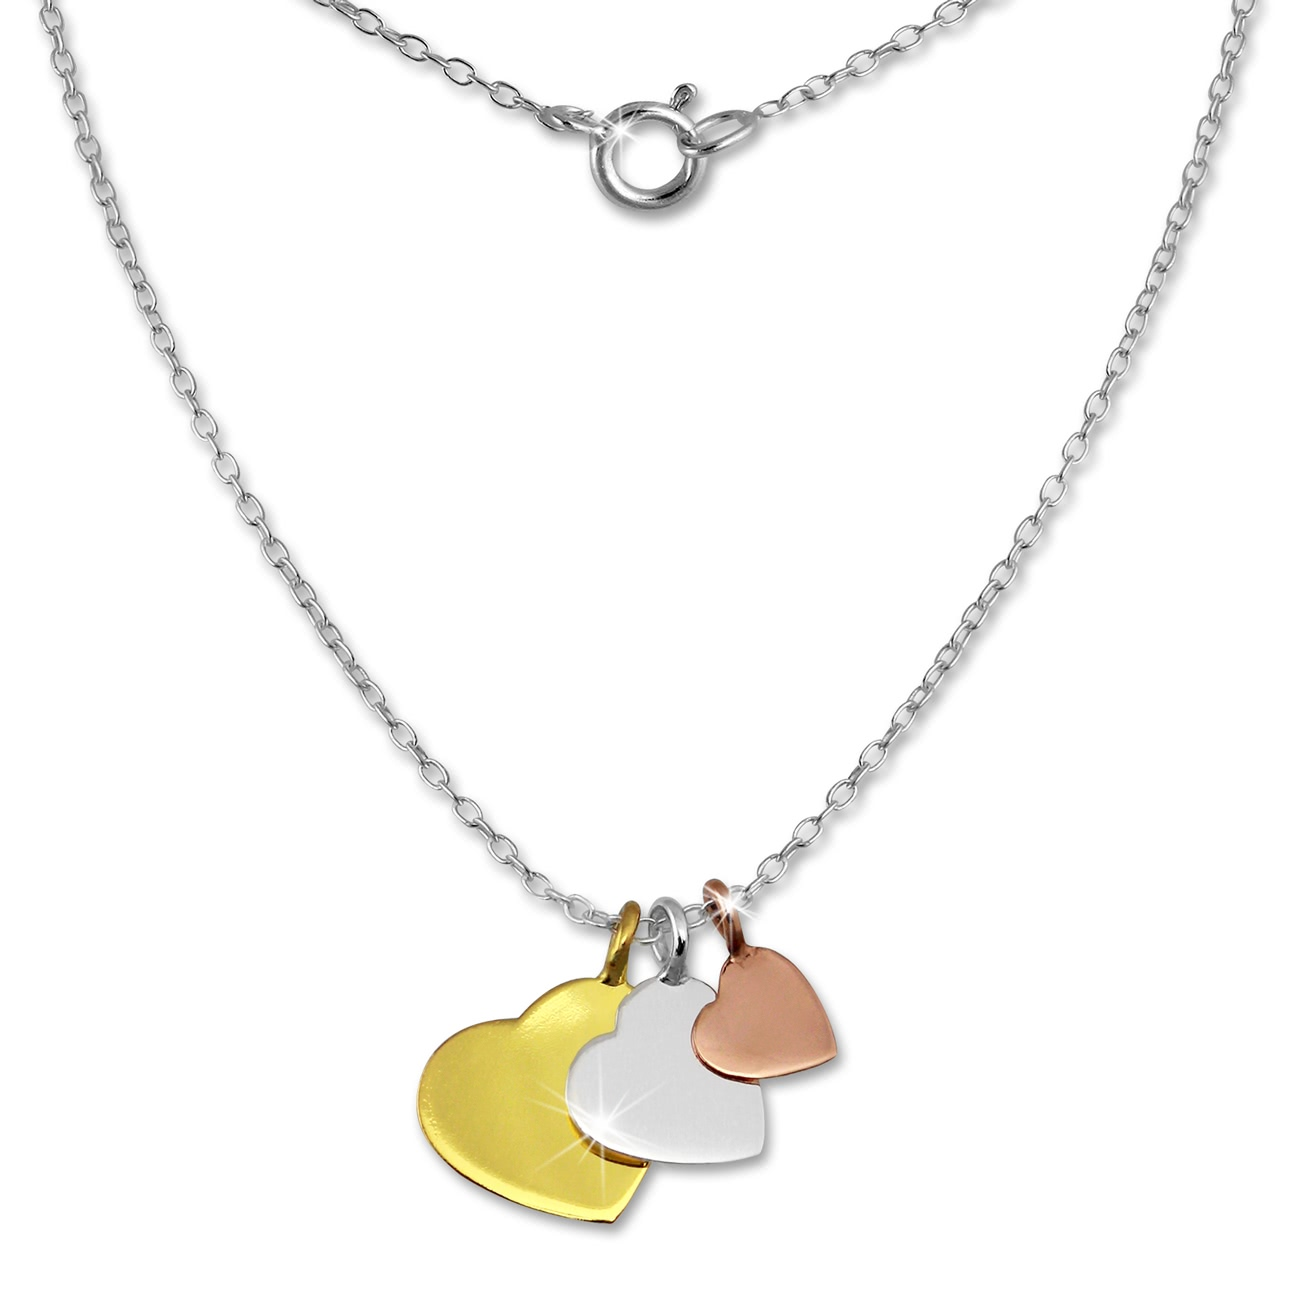 Silver Dream chain<br> 3 hearts gold<br>plated 925 silver